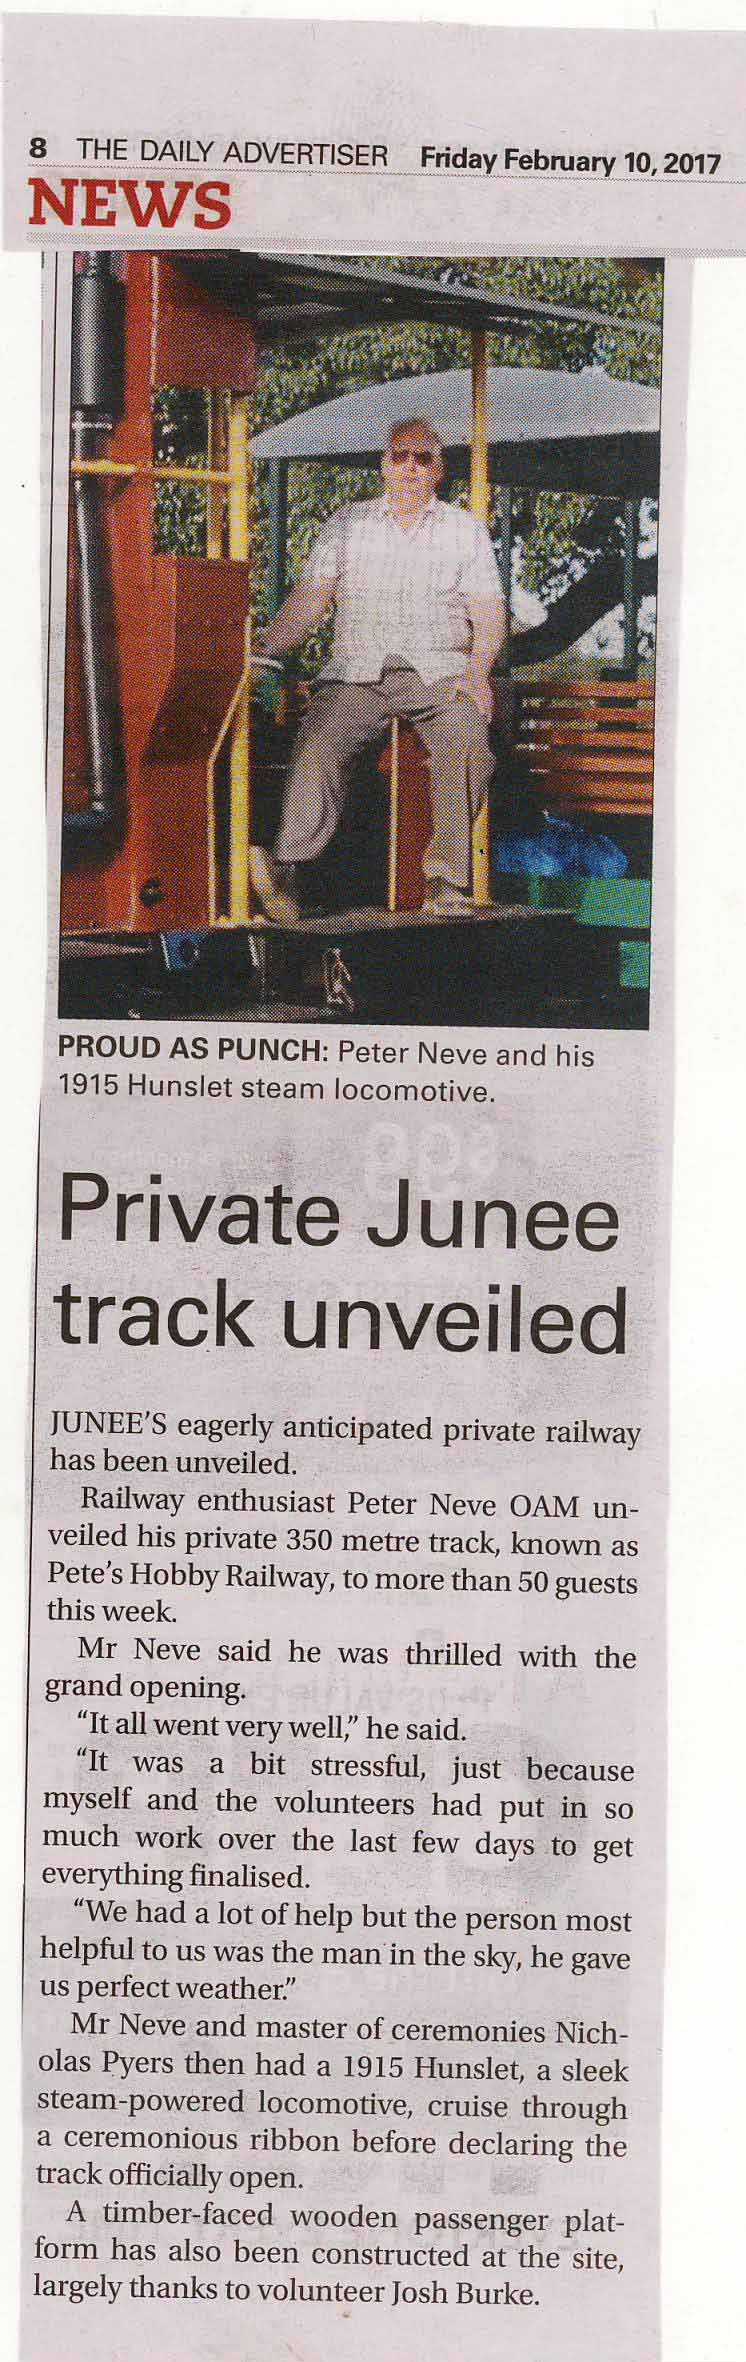 Private Junee track unveiled, as published on Page 8 in Wagga's The Daily Advertiser on Friday, February 10, 2017